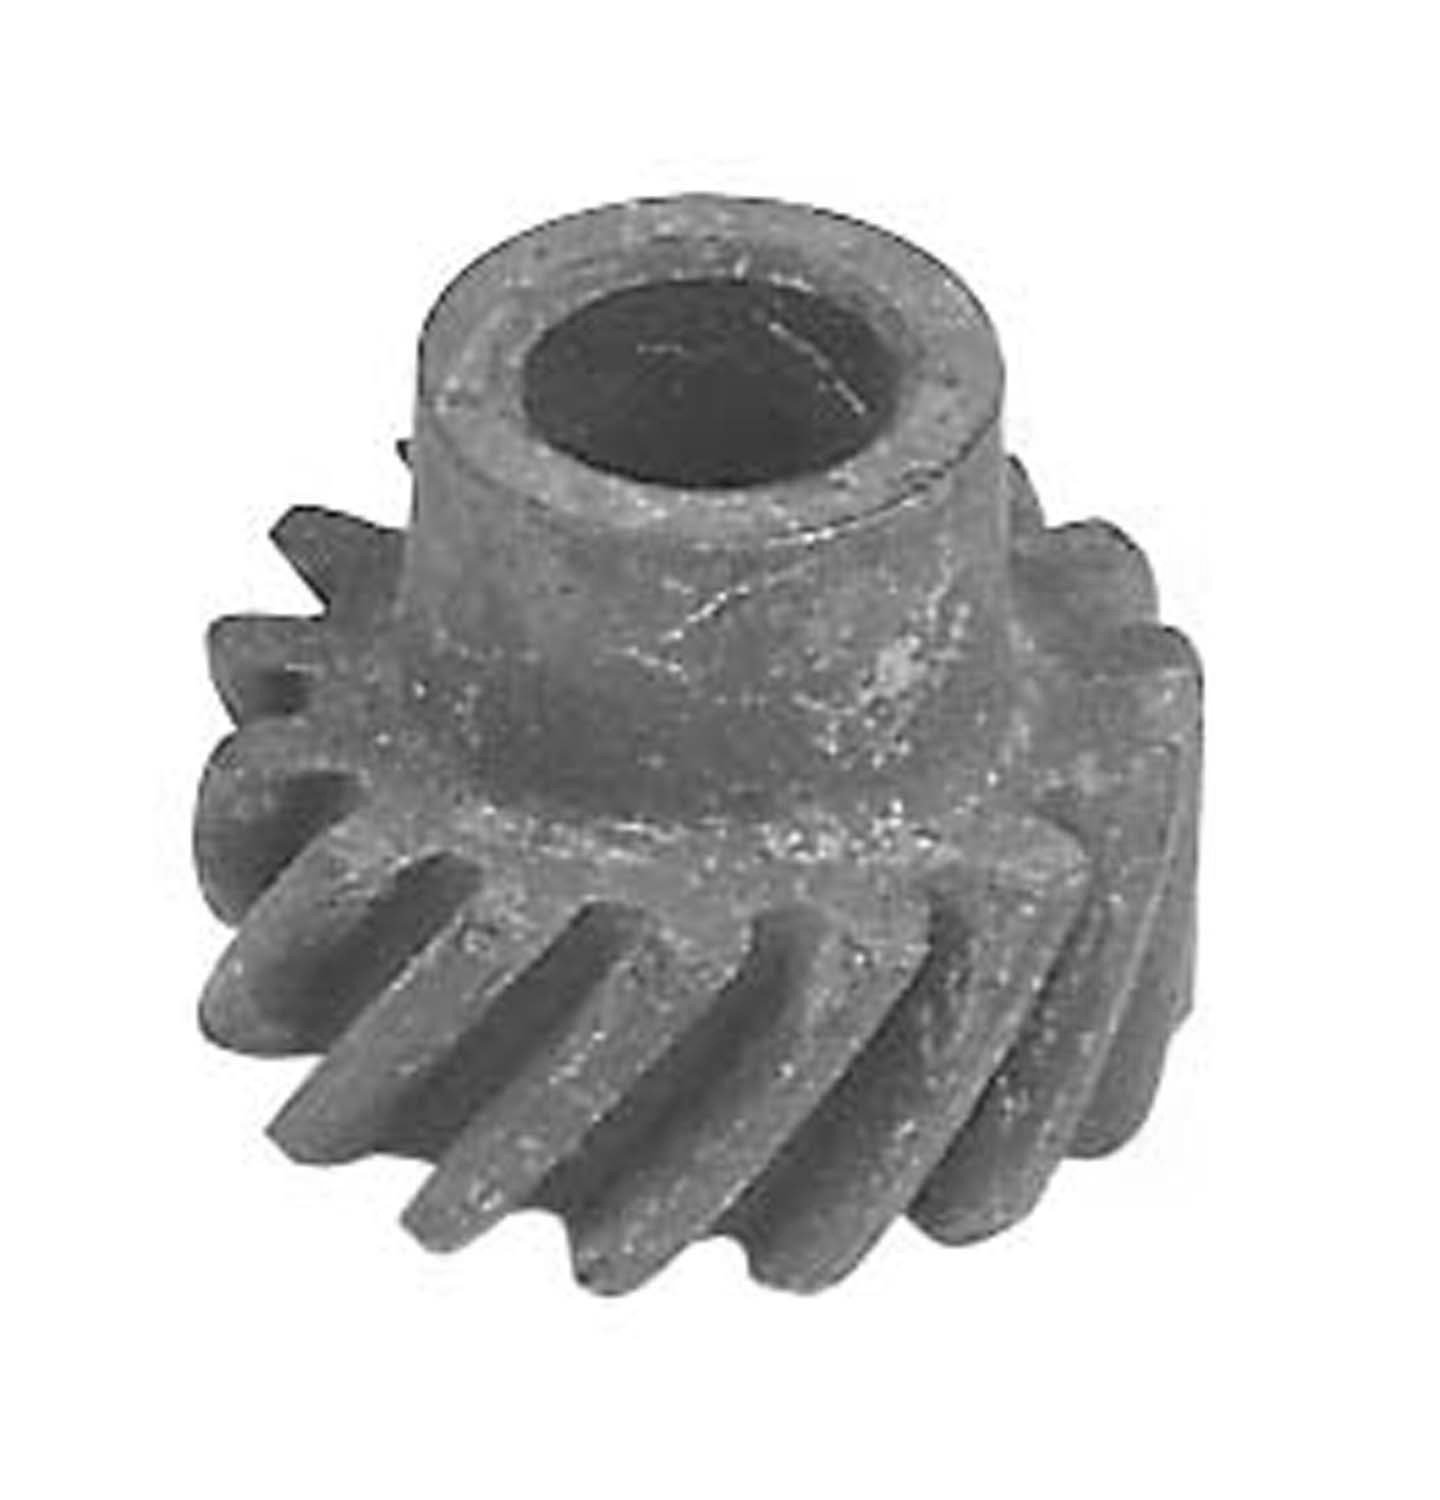 85812 - Ford Iron Distributor Gear Image